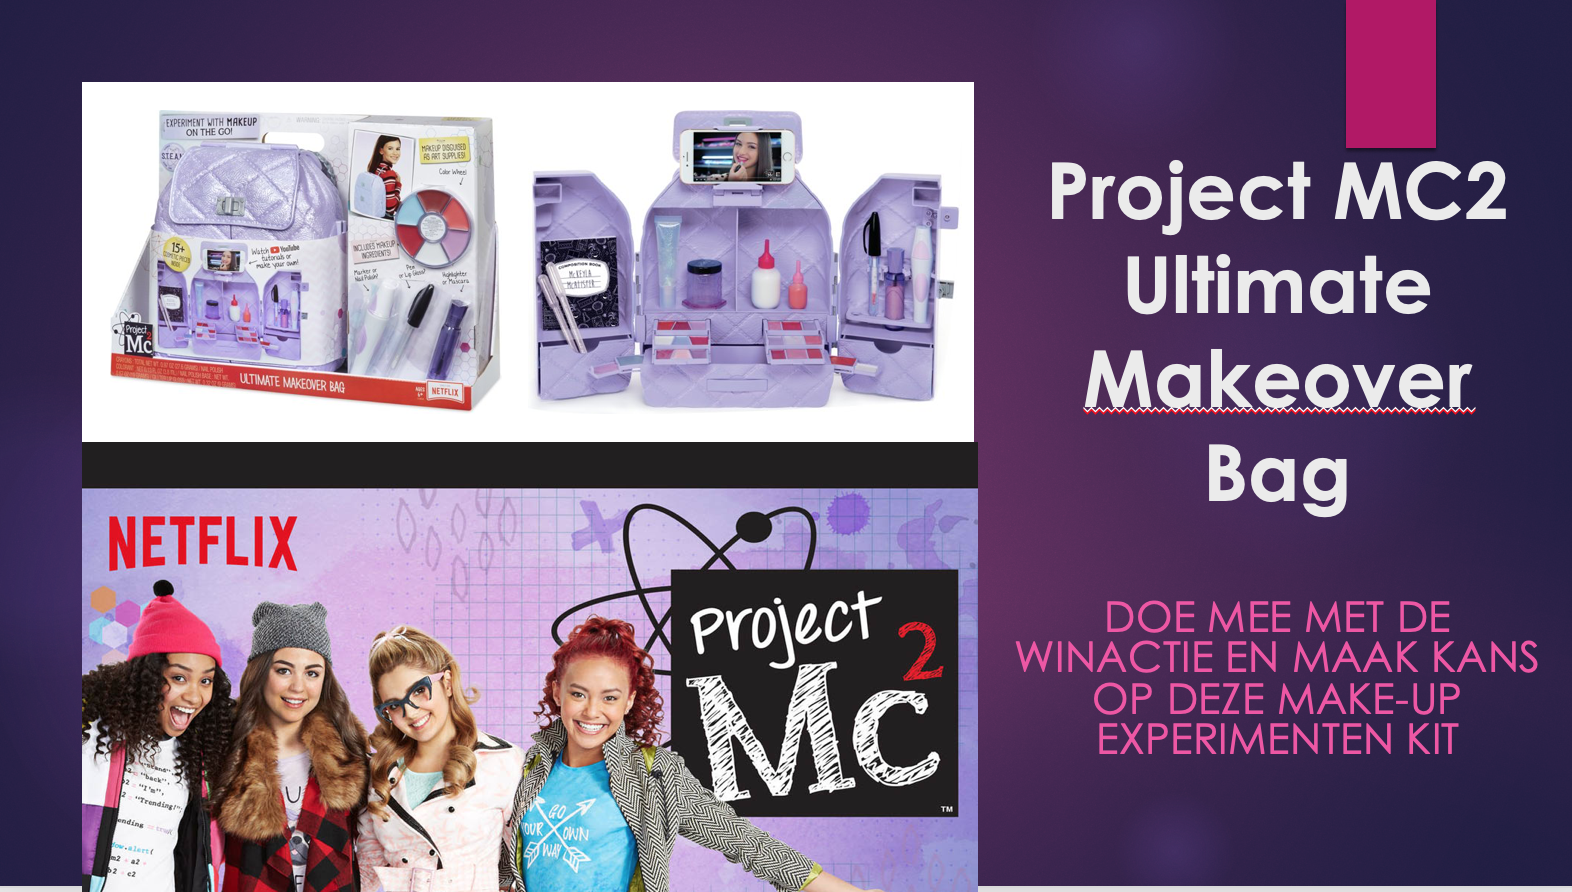 MC2 Project Ultimate Makeover Bag